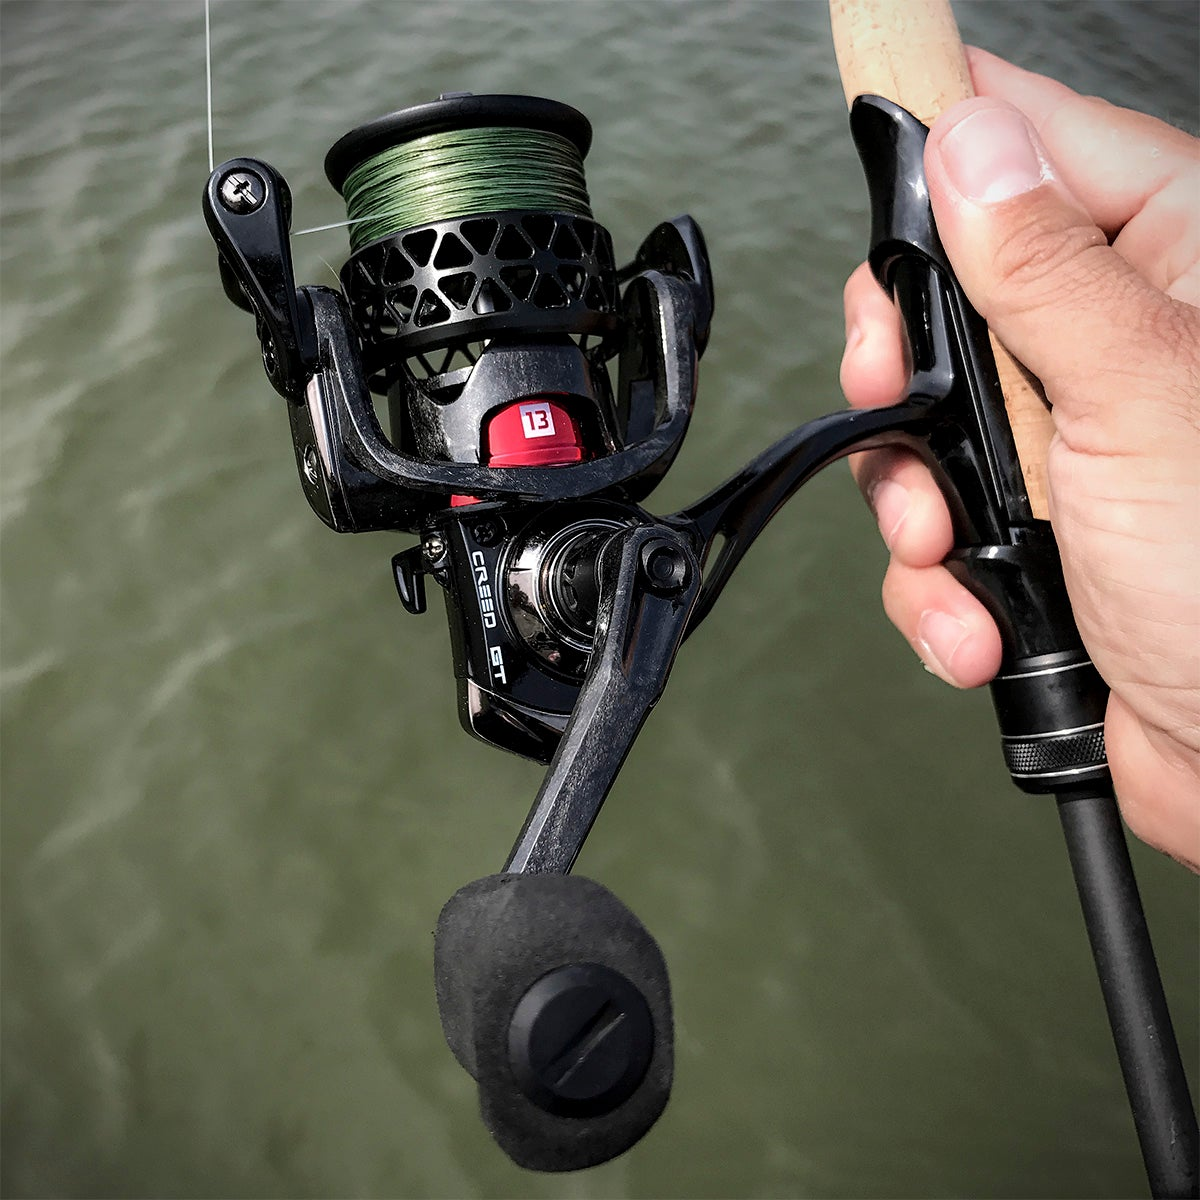 One3 creed gt spinning reel tackle review for 13 fishing combo